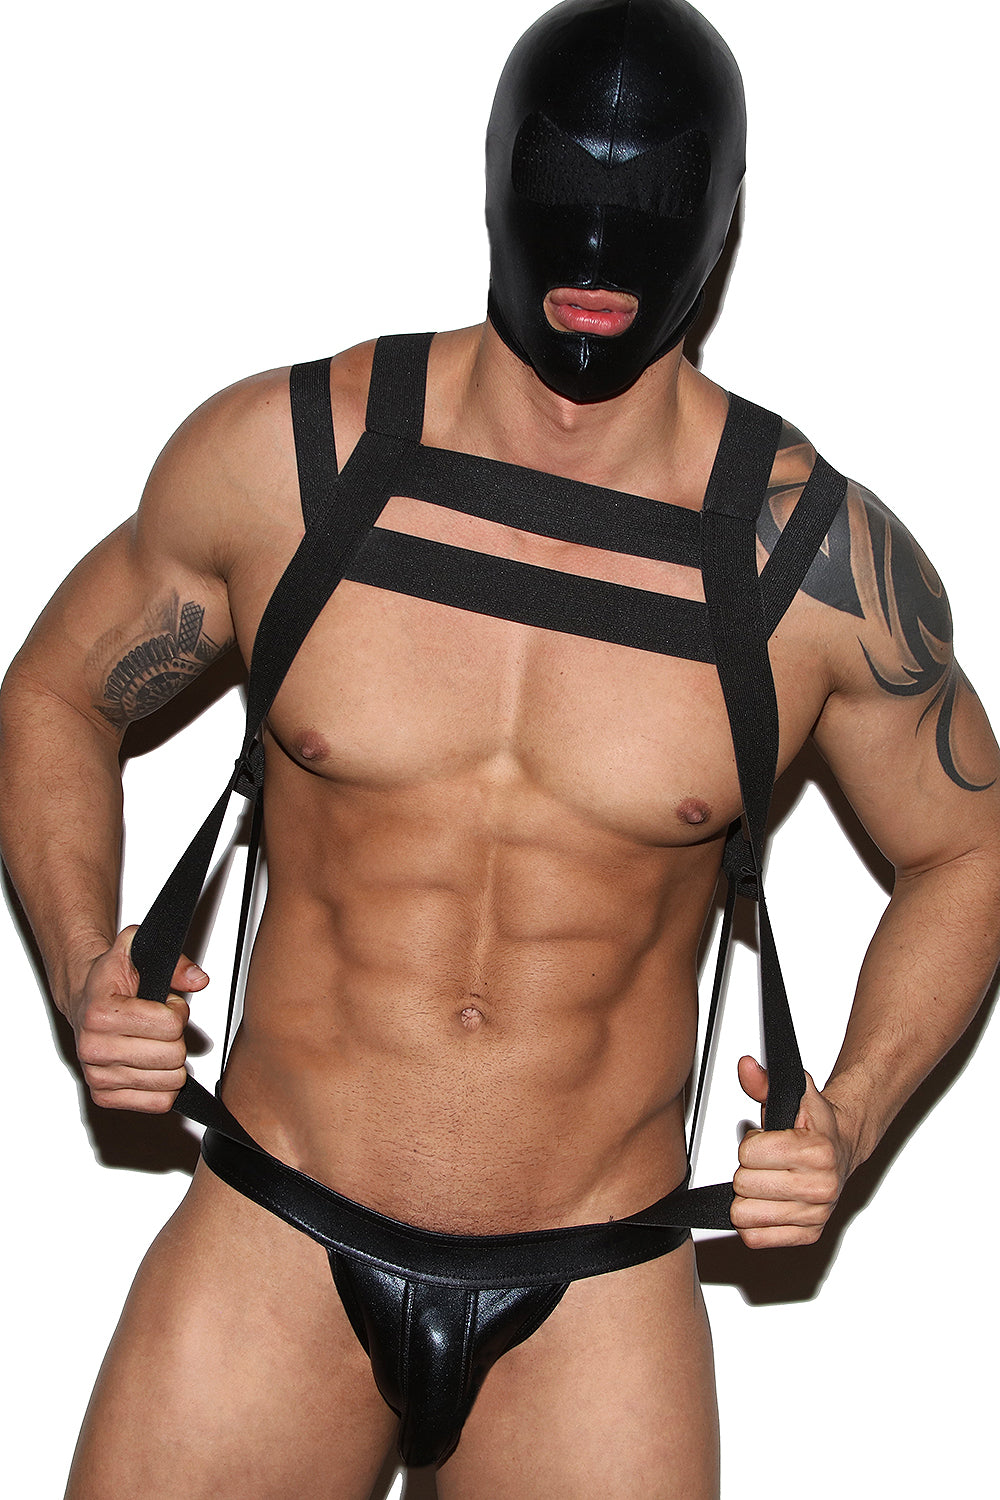 Horseman Harness